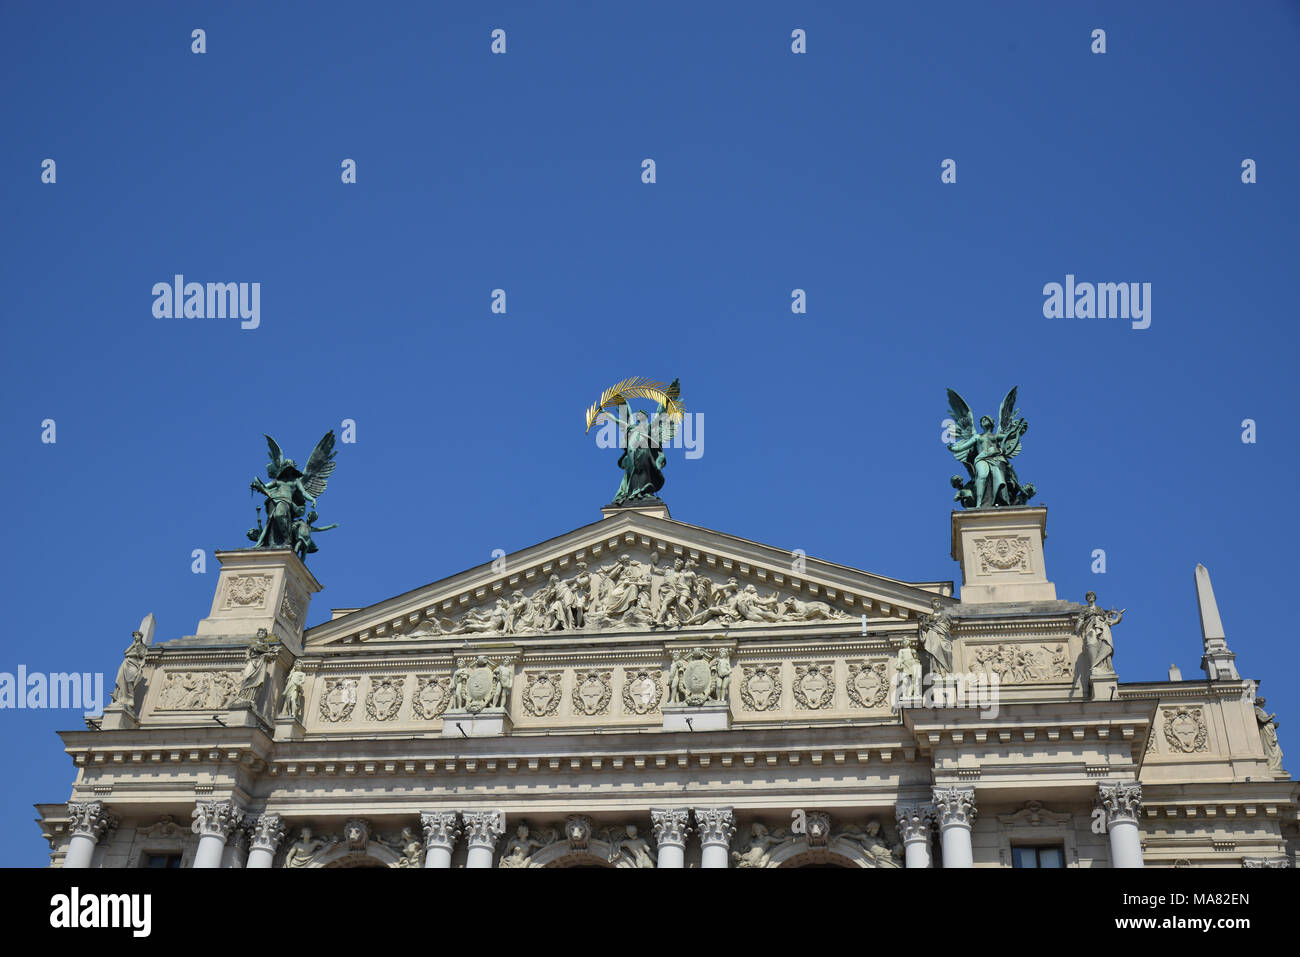 The famous Solomiya Krushelnytska Opera in Lviv with the statue of glory on a perfect summer day. - Stock Image